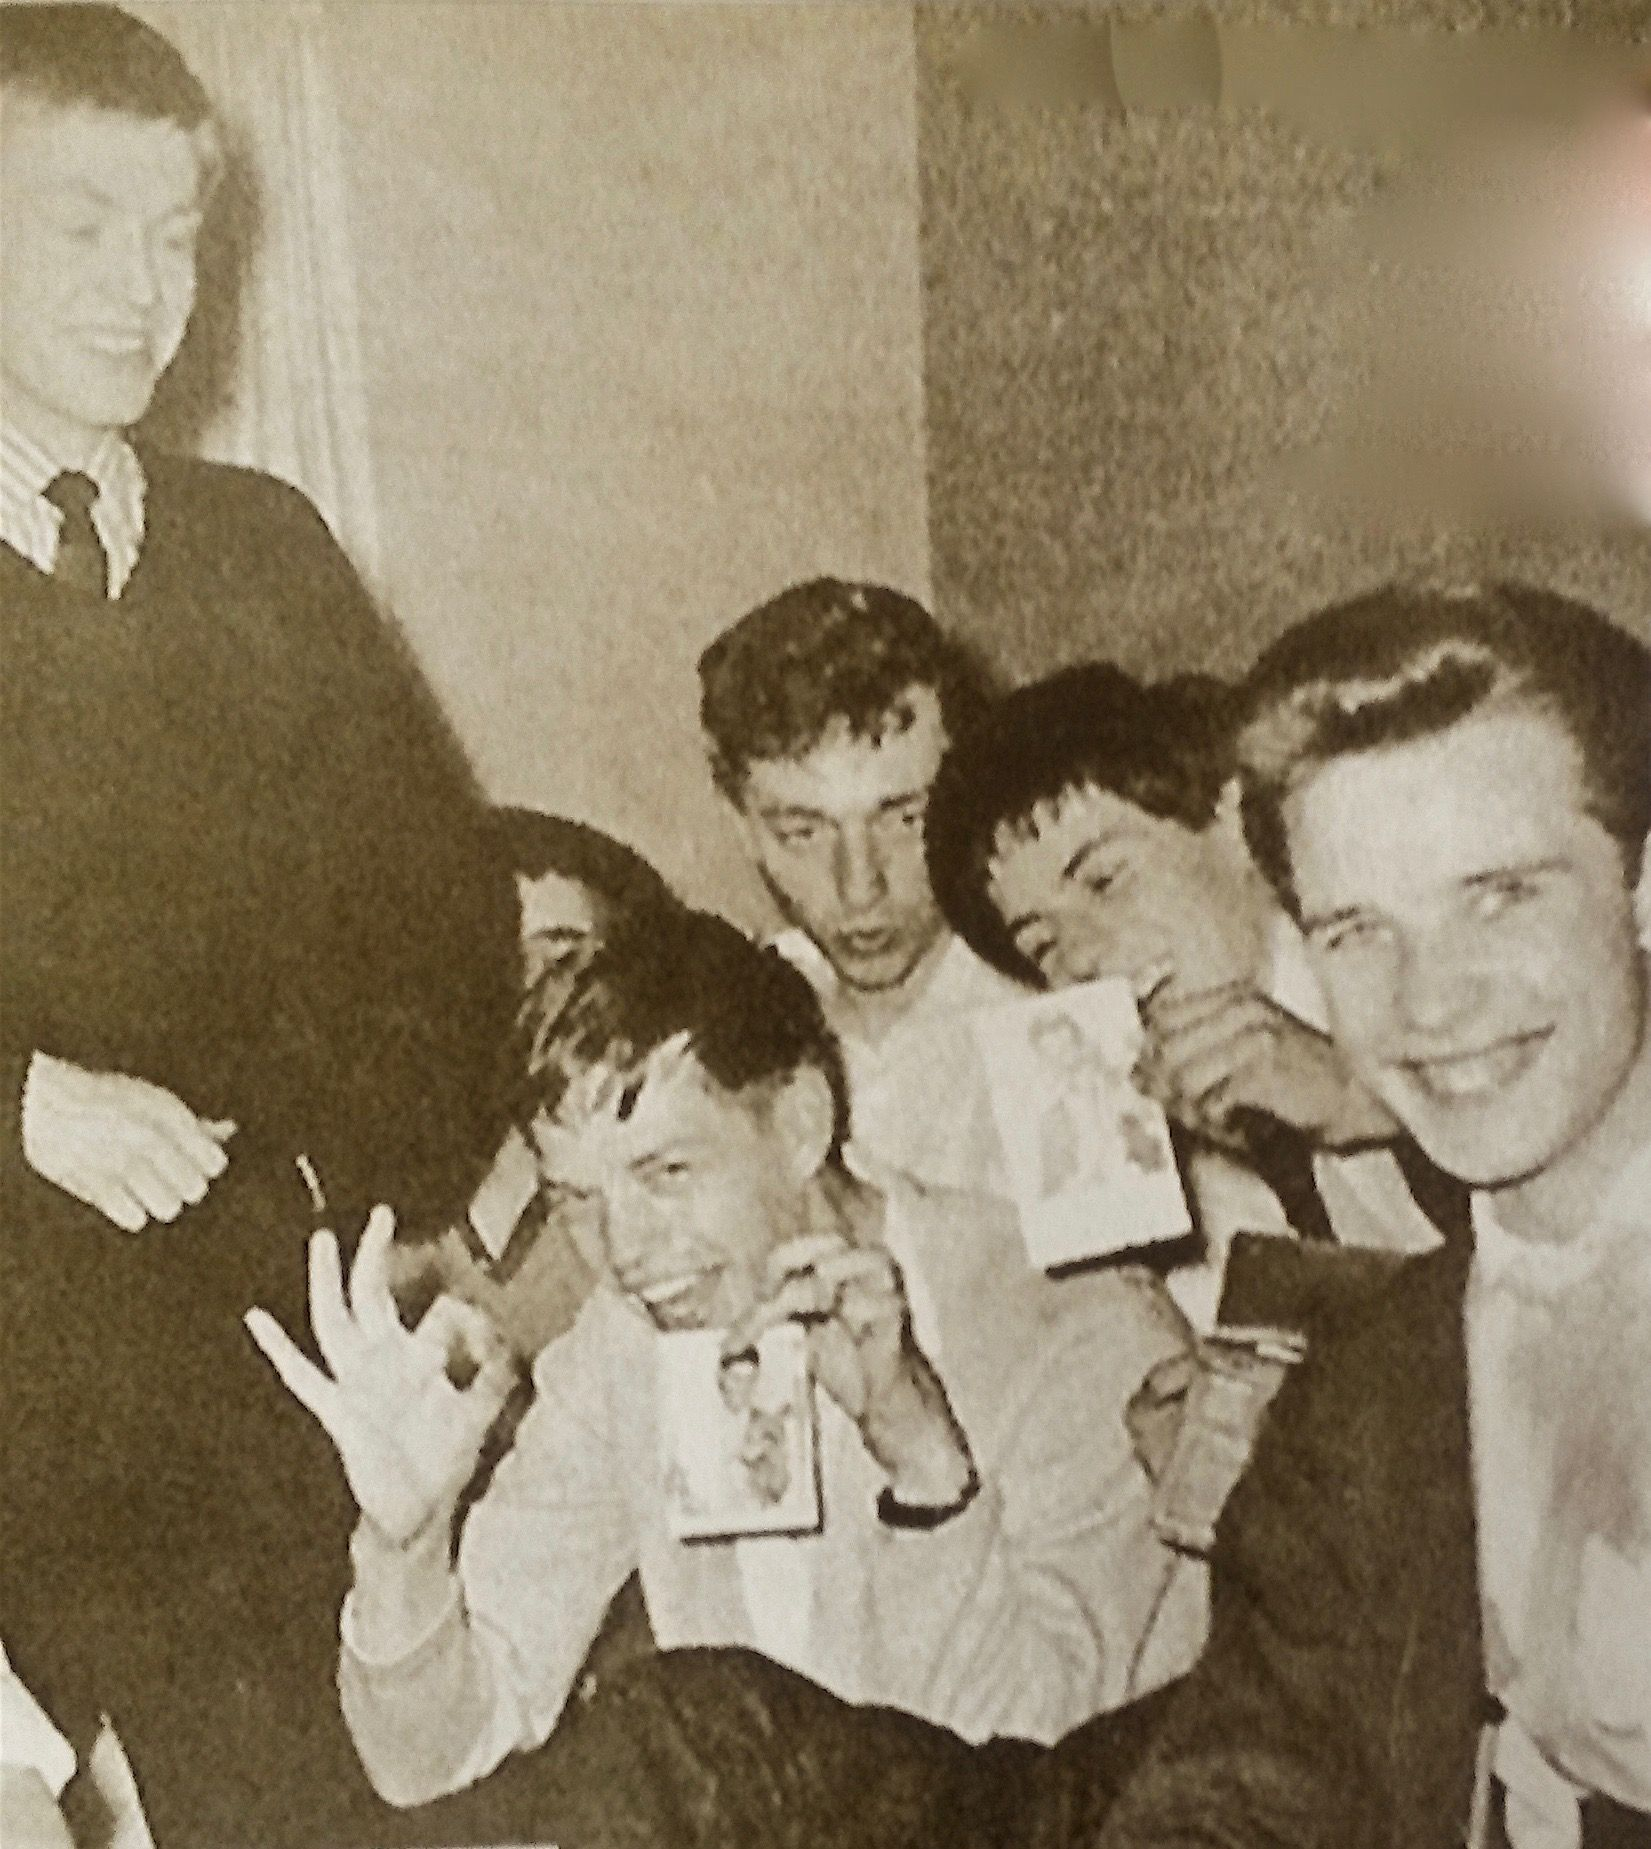 Rarity* Mick 26 Sept  1962 with Brian, Keith, Harry Simmonds,Graham Ackers.